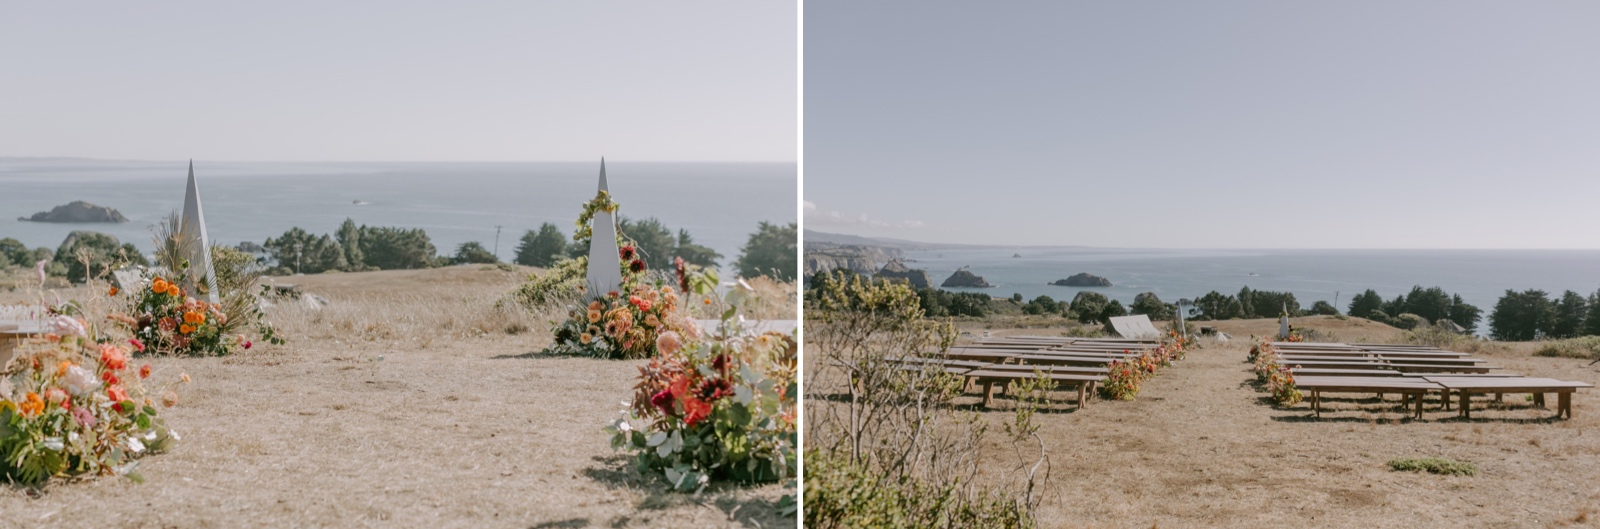 Mendocino_Wedding_Cuffeys_Cove077.JPG